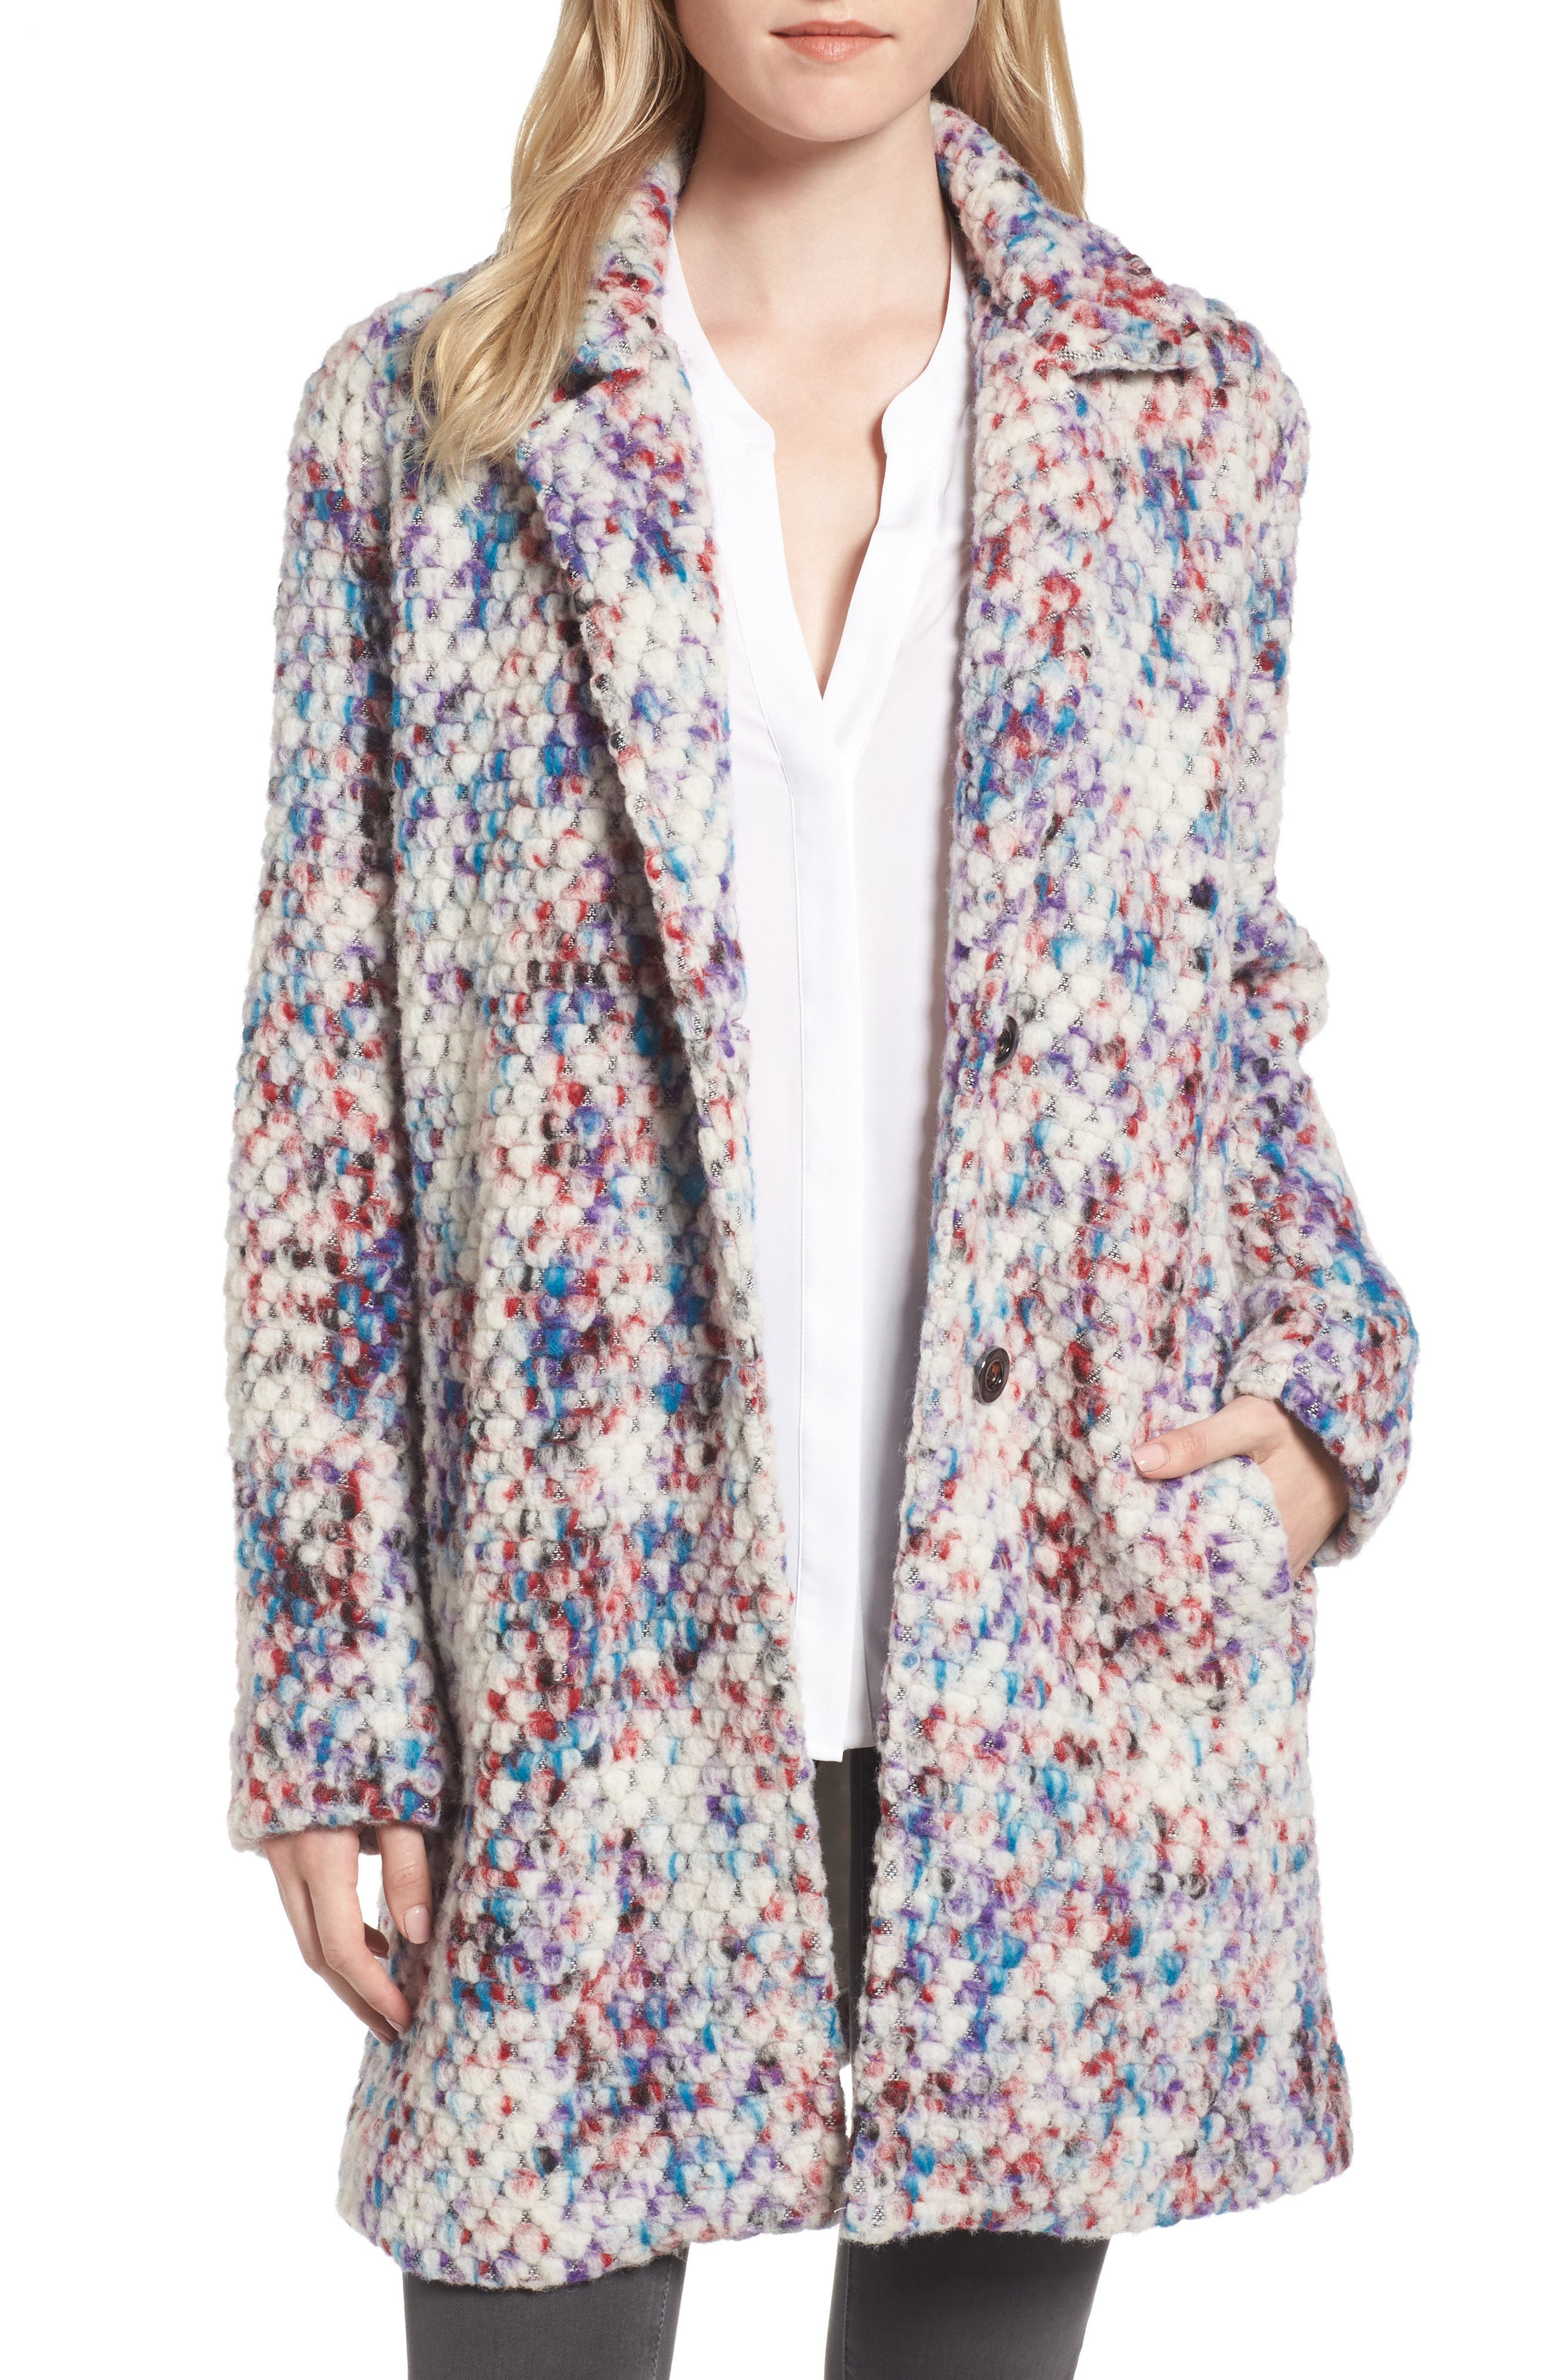 Alternate Image 1 Selected - Steve Madden Confetti Wool Blend Coat